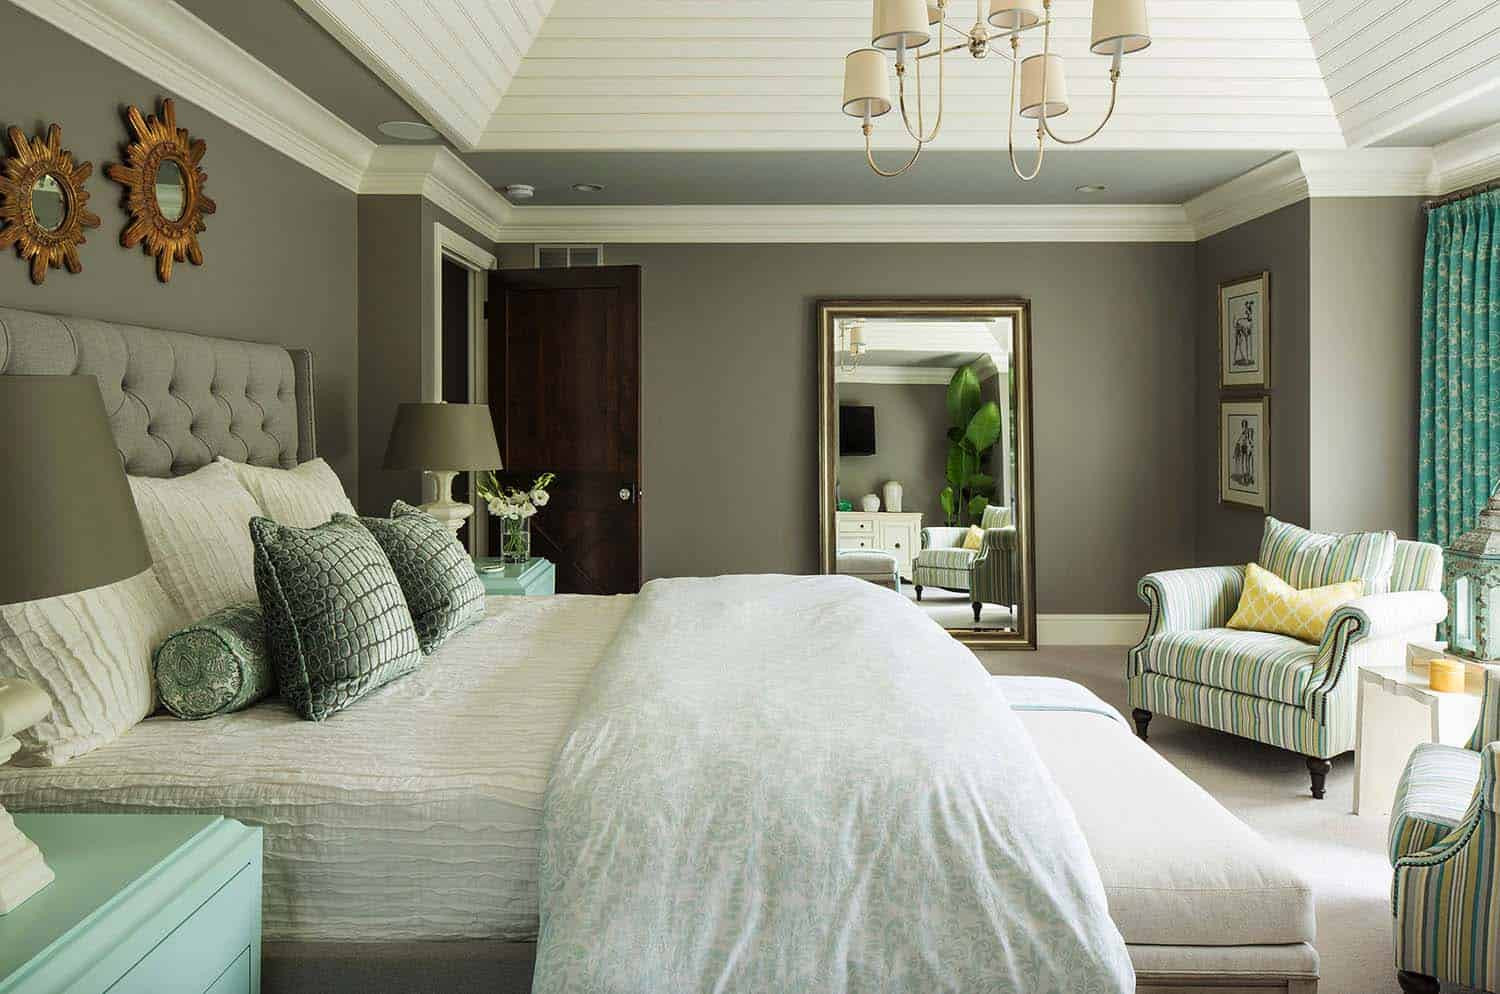 Best ideas about Bedroom Colors Ideas . Save or Pin 25 Absolutely stunning master bedroom color scheme ideas Now.